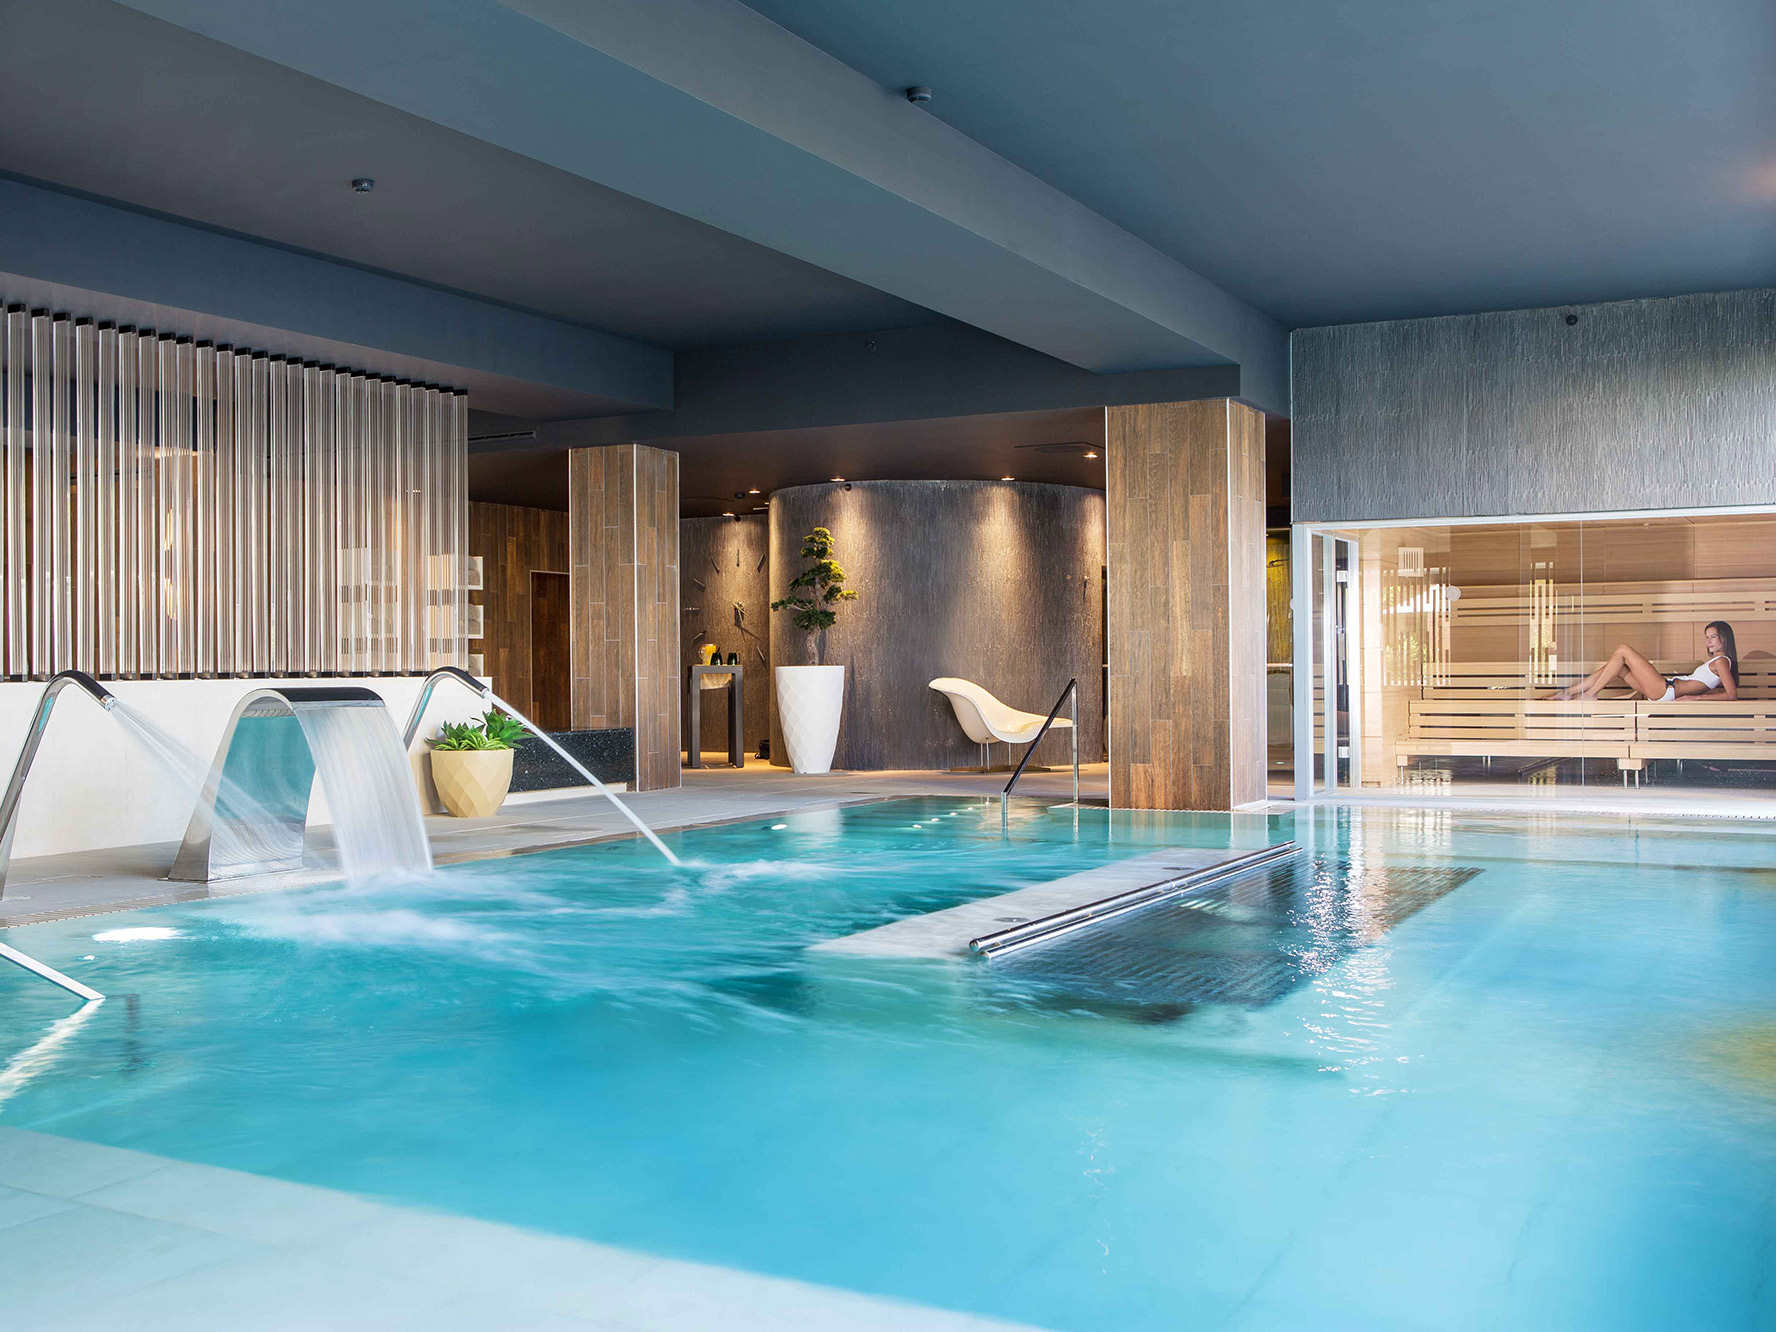 The Oasis Spa & Wellness Marbella | Interioristas Barcelona | MOEM Studio